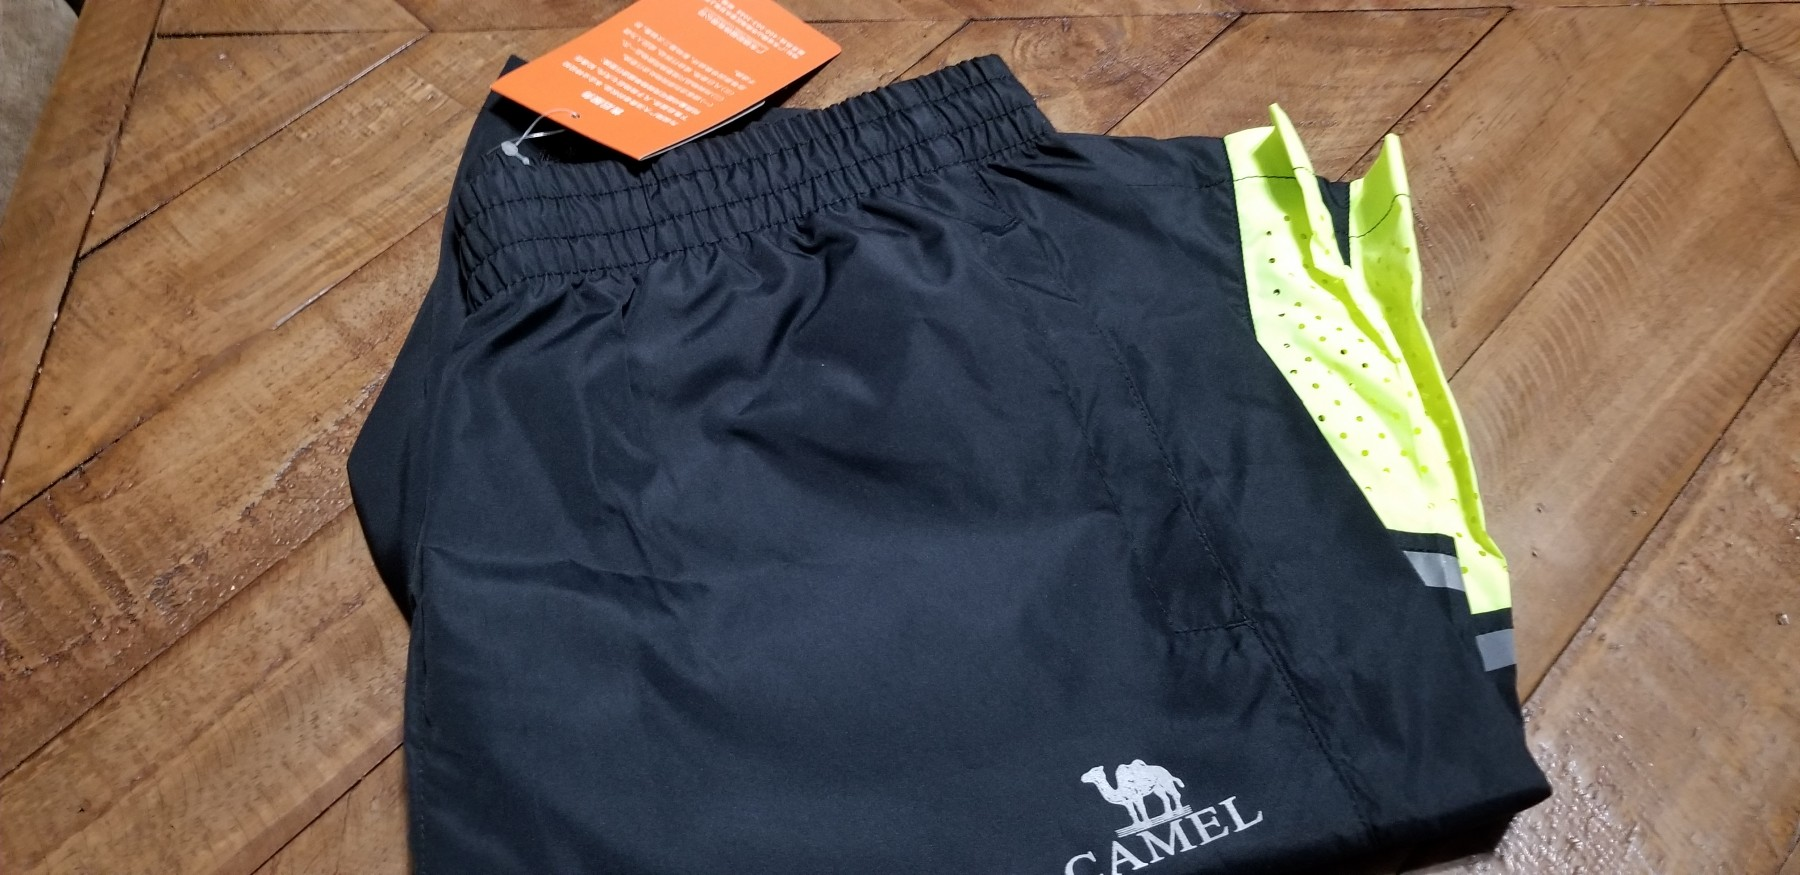 Great shorts for running